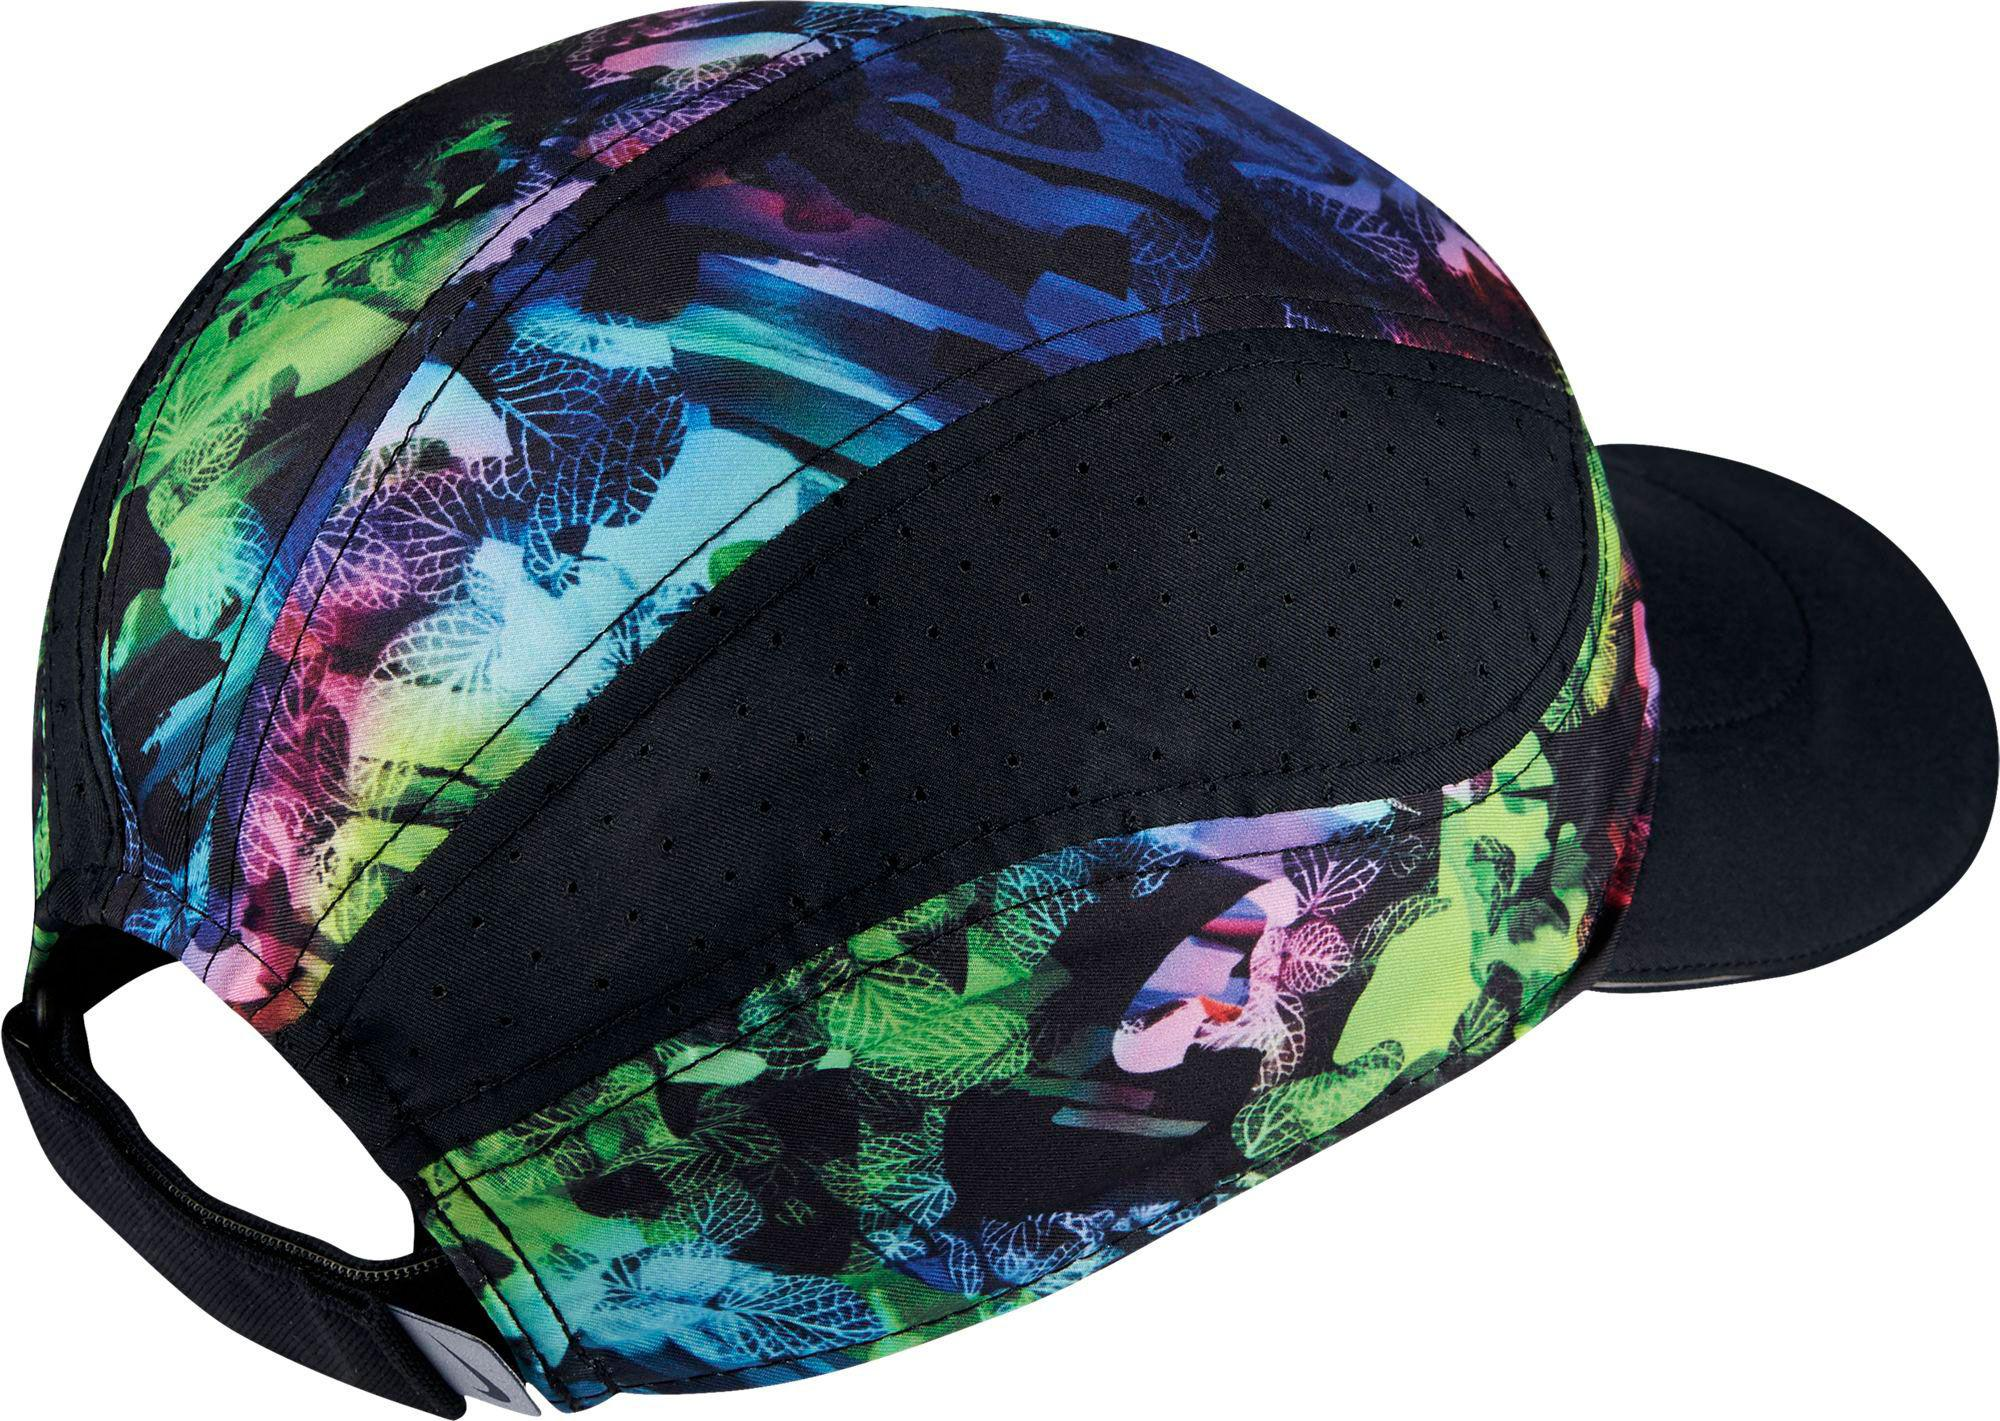 7e0b977a213f6 ... authentic lyst nike aerobill adjustable running hat in black for men  da9ed d3d72 ...